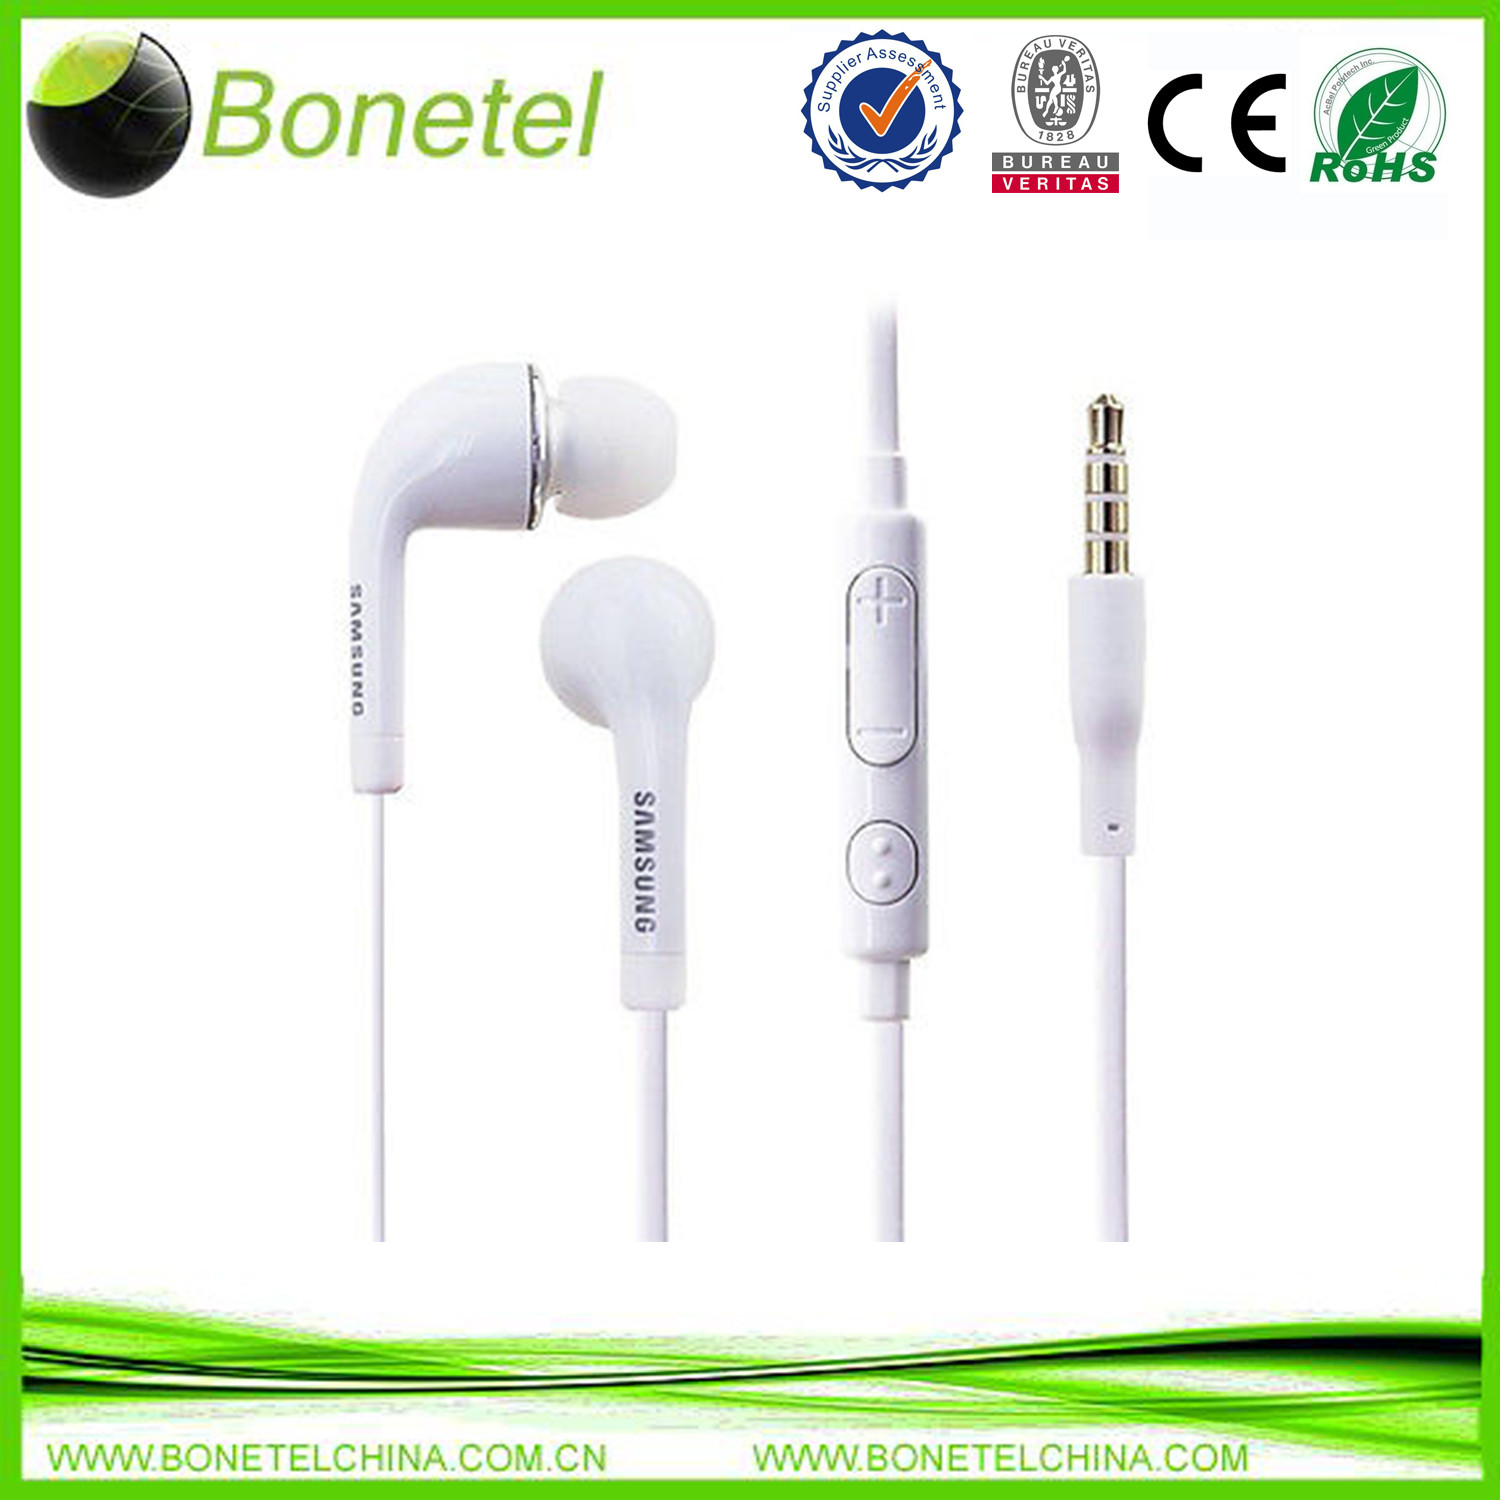 New Stereo Headset Headphones Earphones Mic for SAMSUNG Galaxy S3 S4 White Black